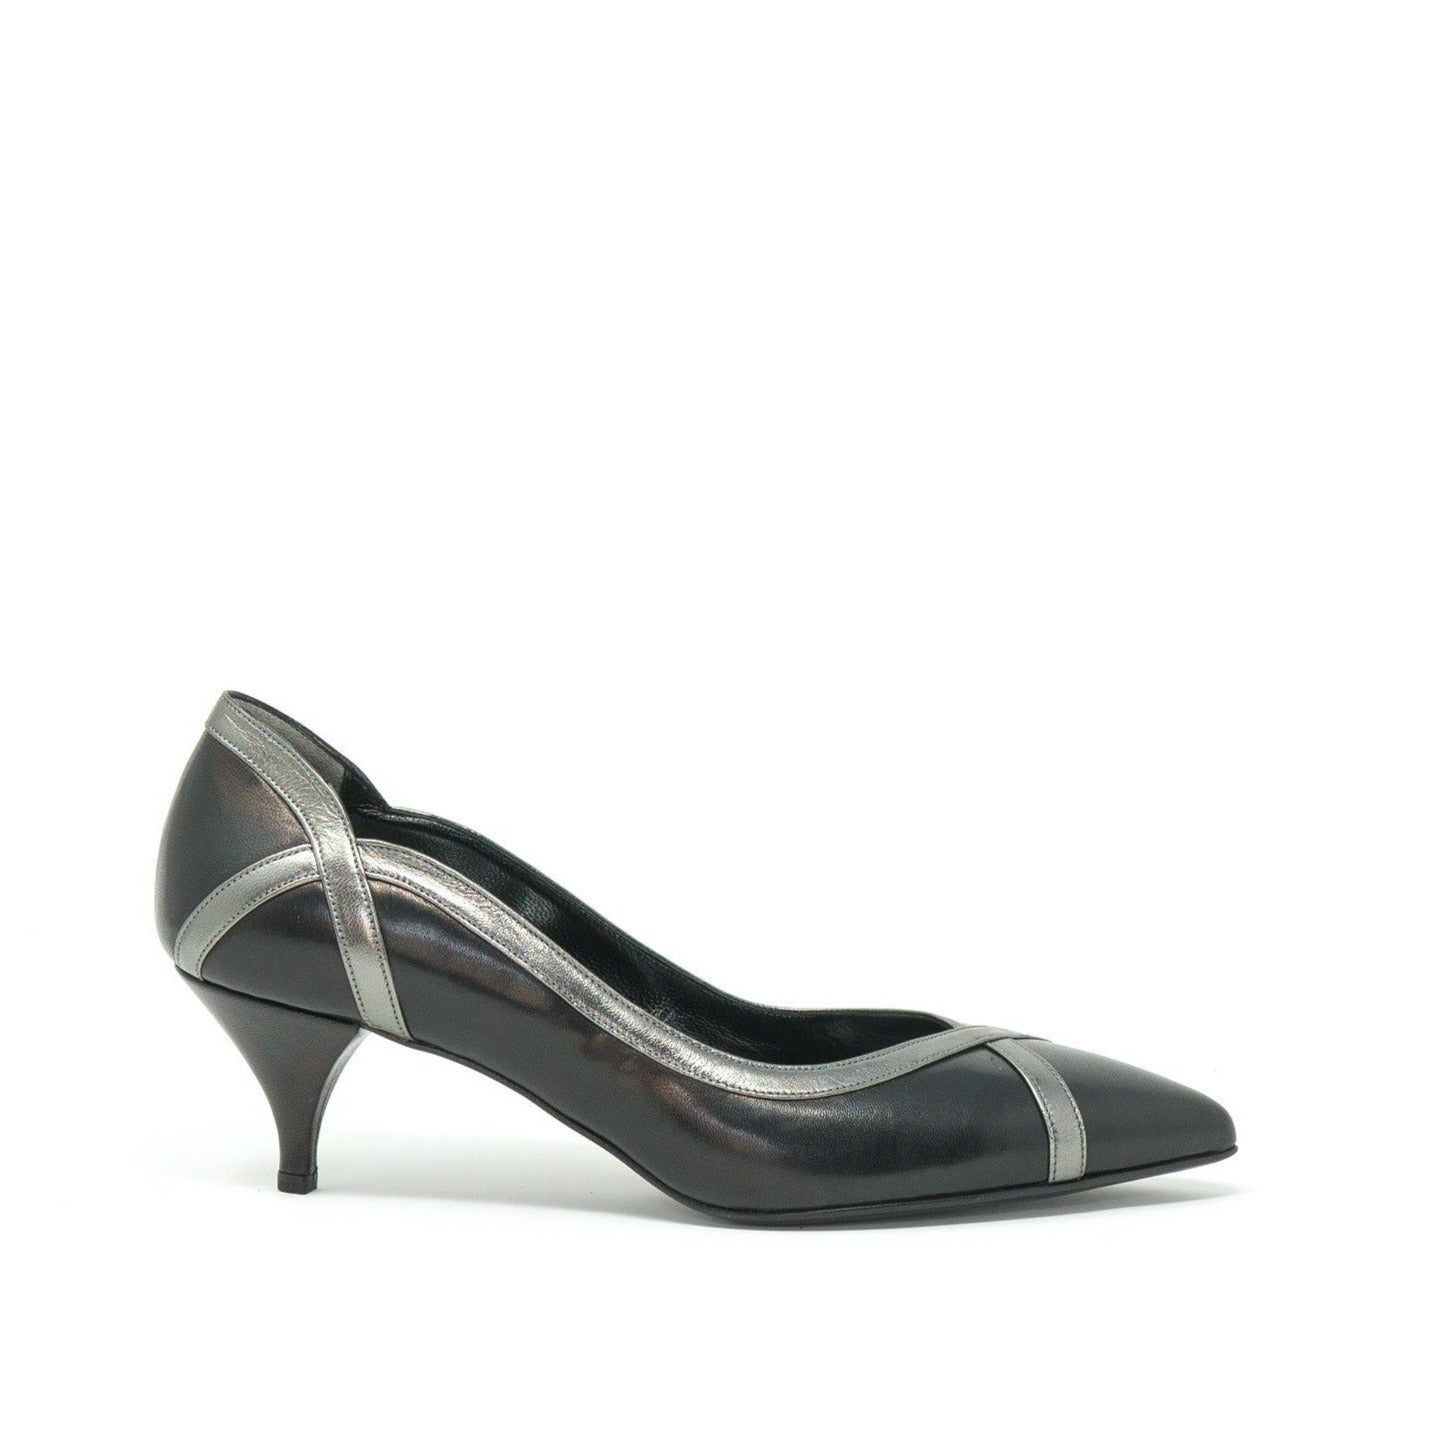 DDL3906B T50 Women Pumps - Jennifer Tattanelli Signature Collection